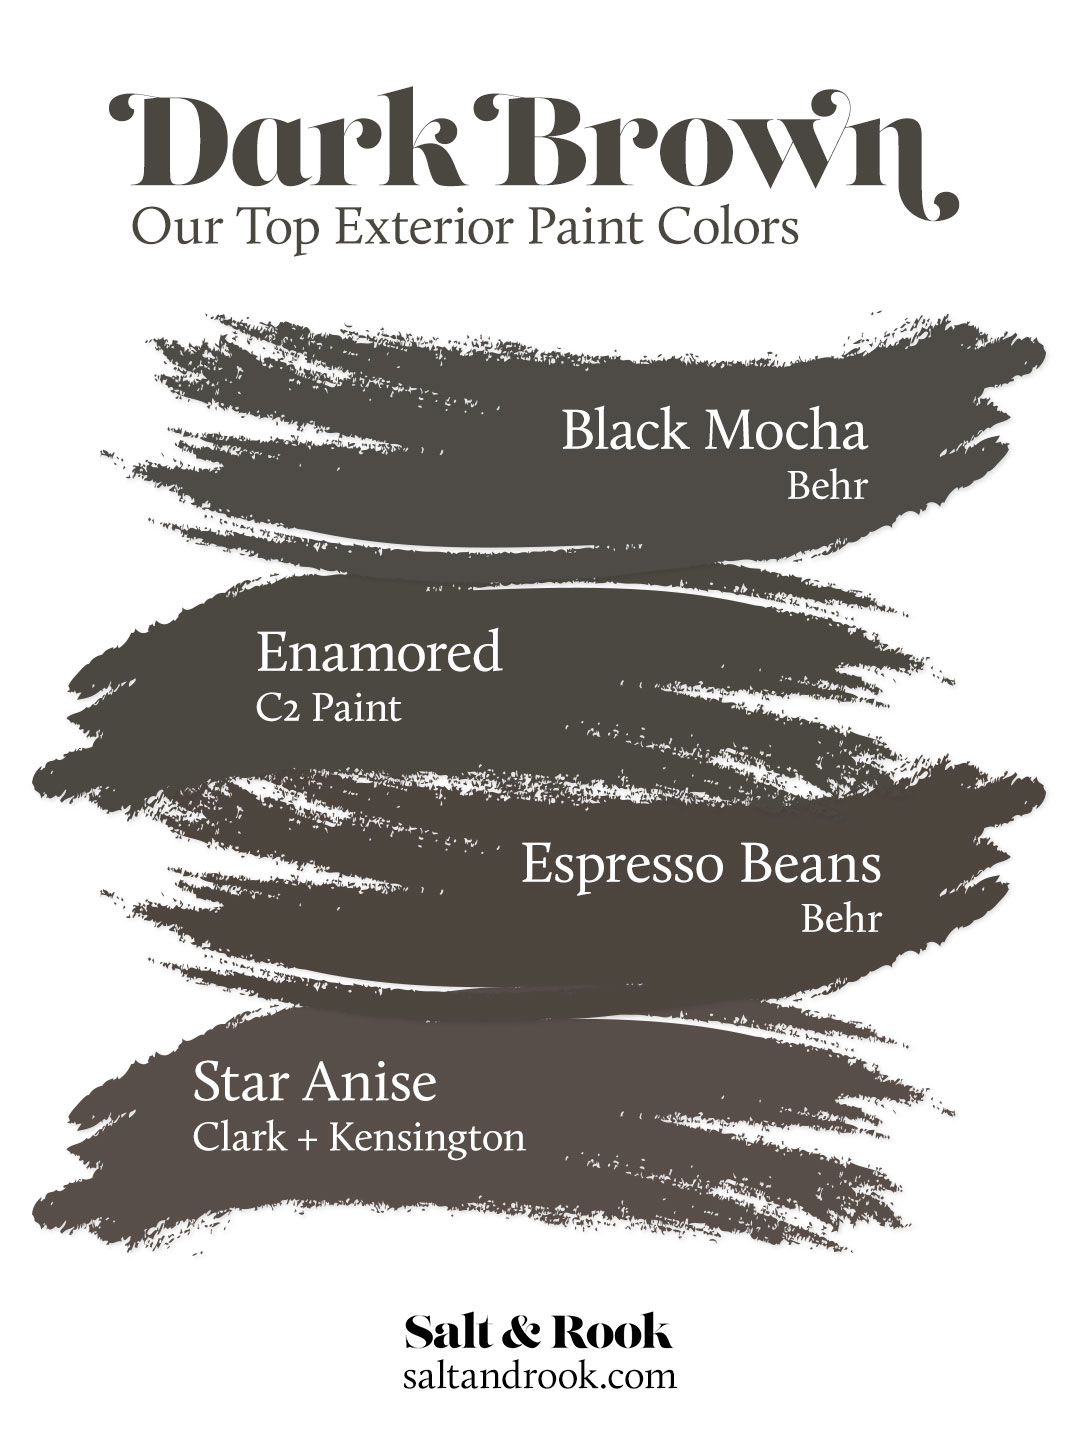 Our Top Dark Brown Exterior Paint Colors For Our Dutch Colonial Salt Rook